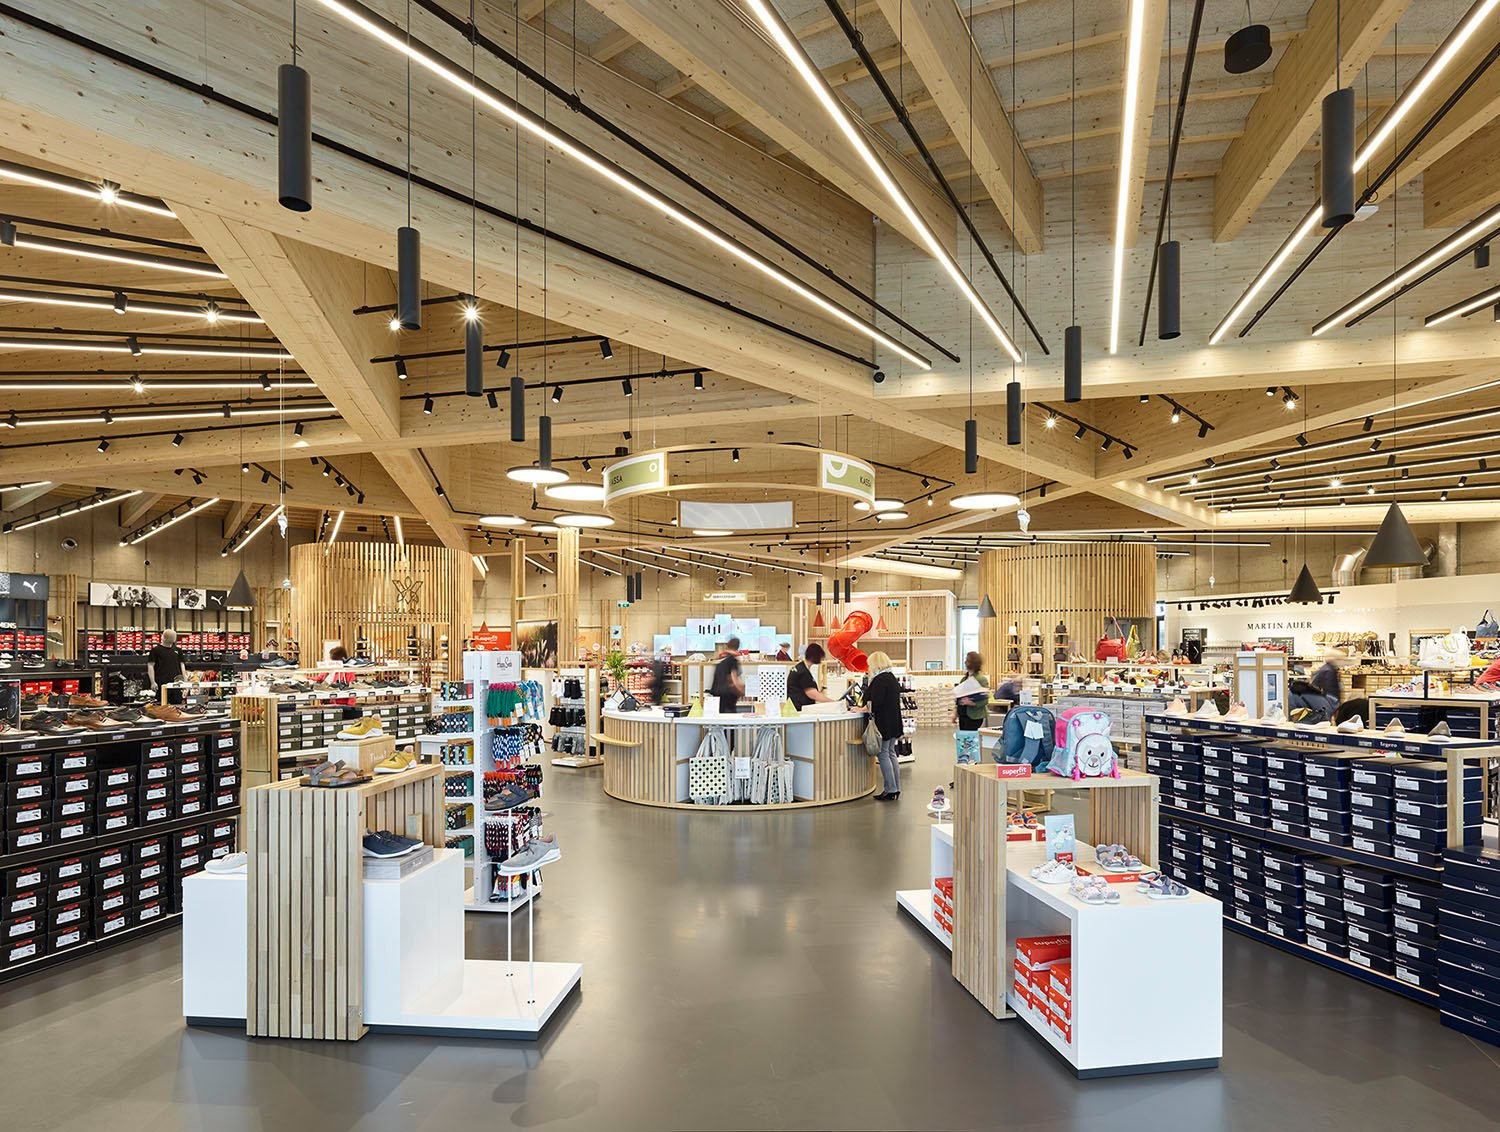 The column-free space of the shoe outlet is spanned by a star-shaped wooden supporting structure. Bruno Klomfar